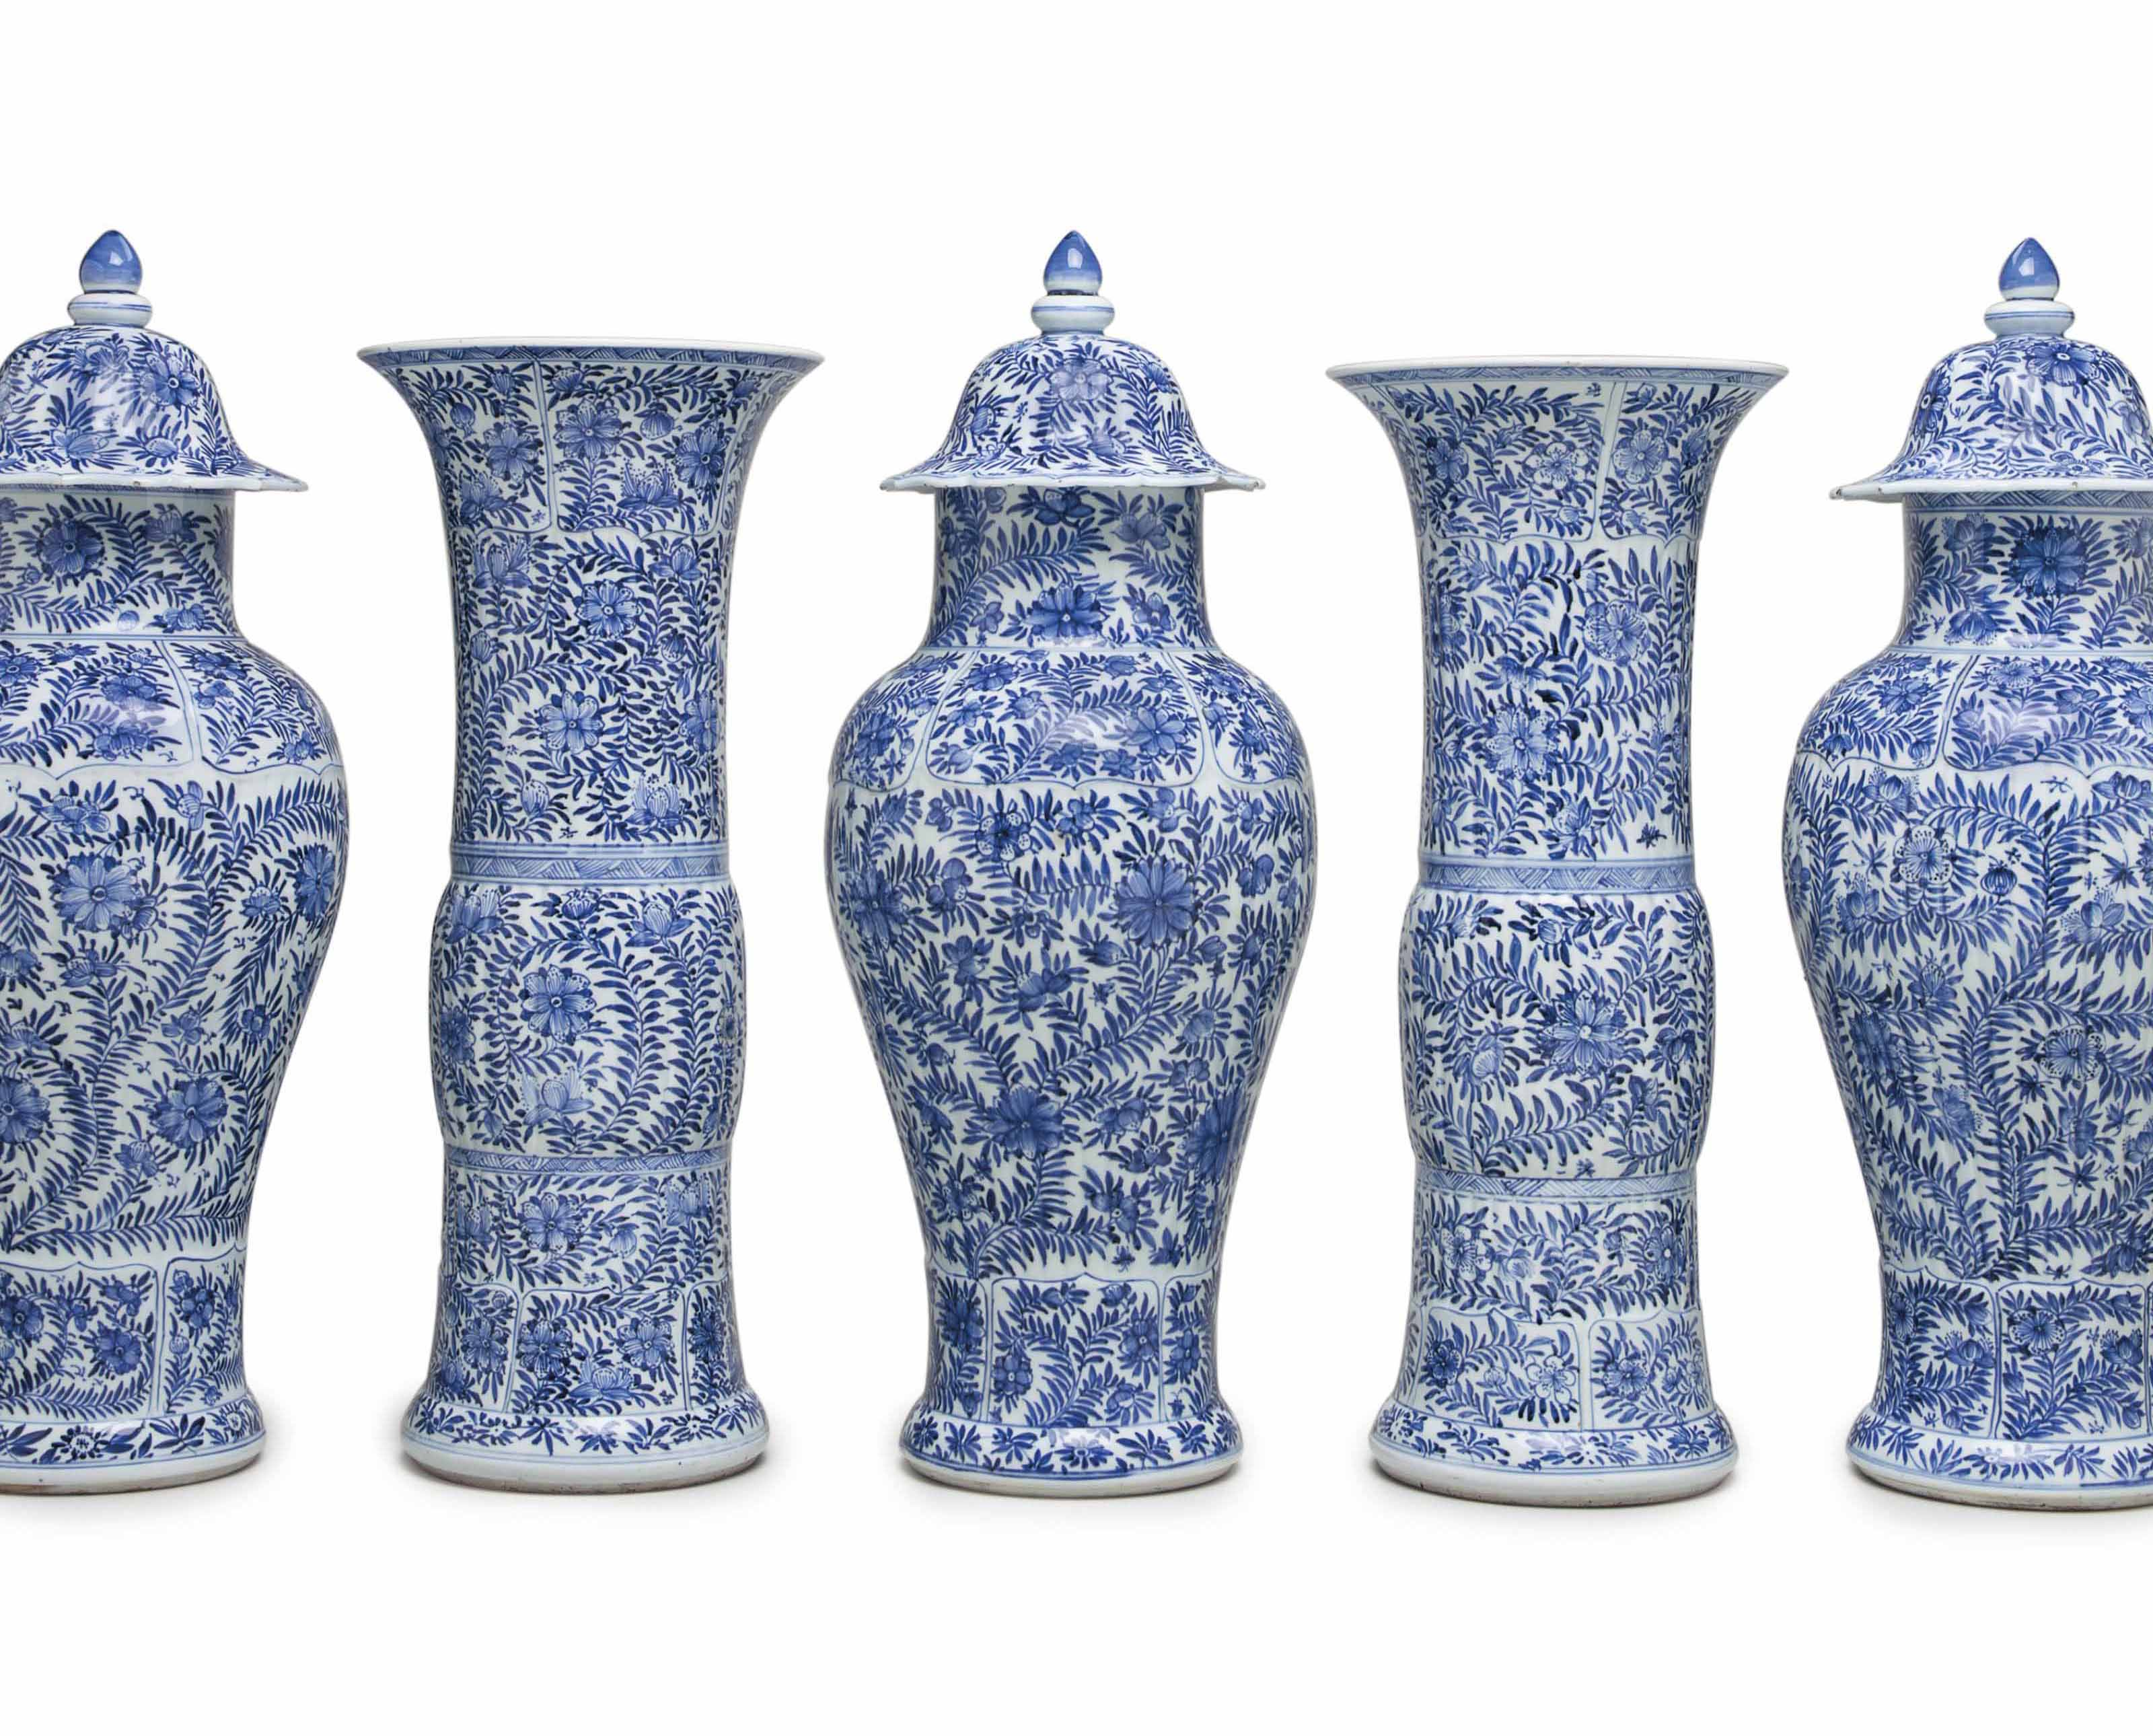 A VERY LARGE BLUE AND WHITE FIVE-PIECE GARNITURE